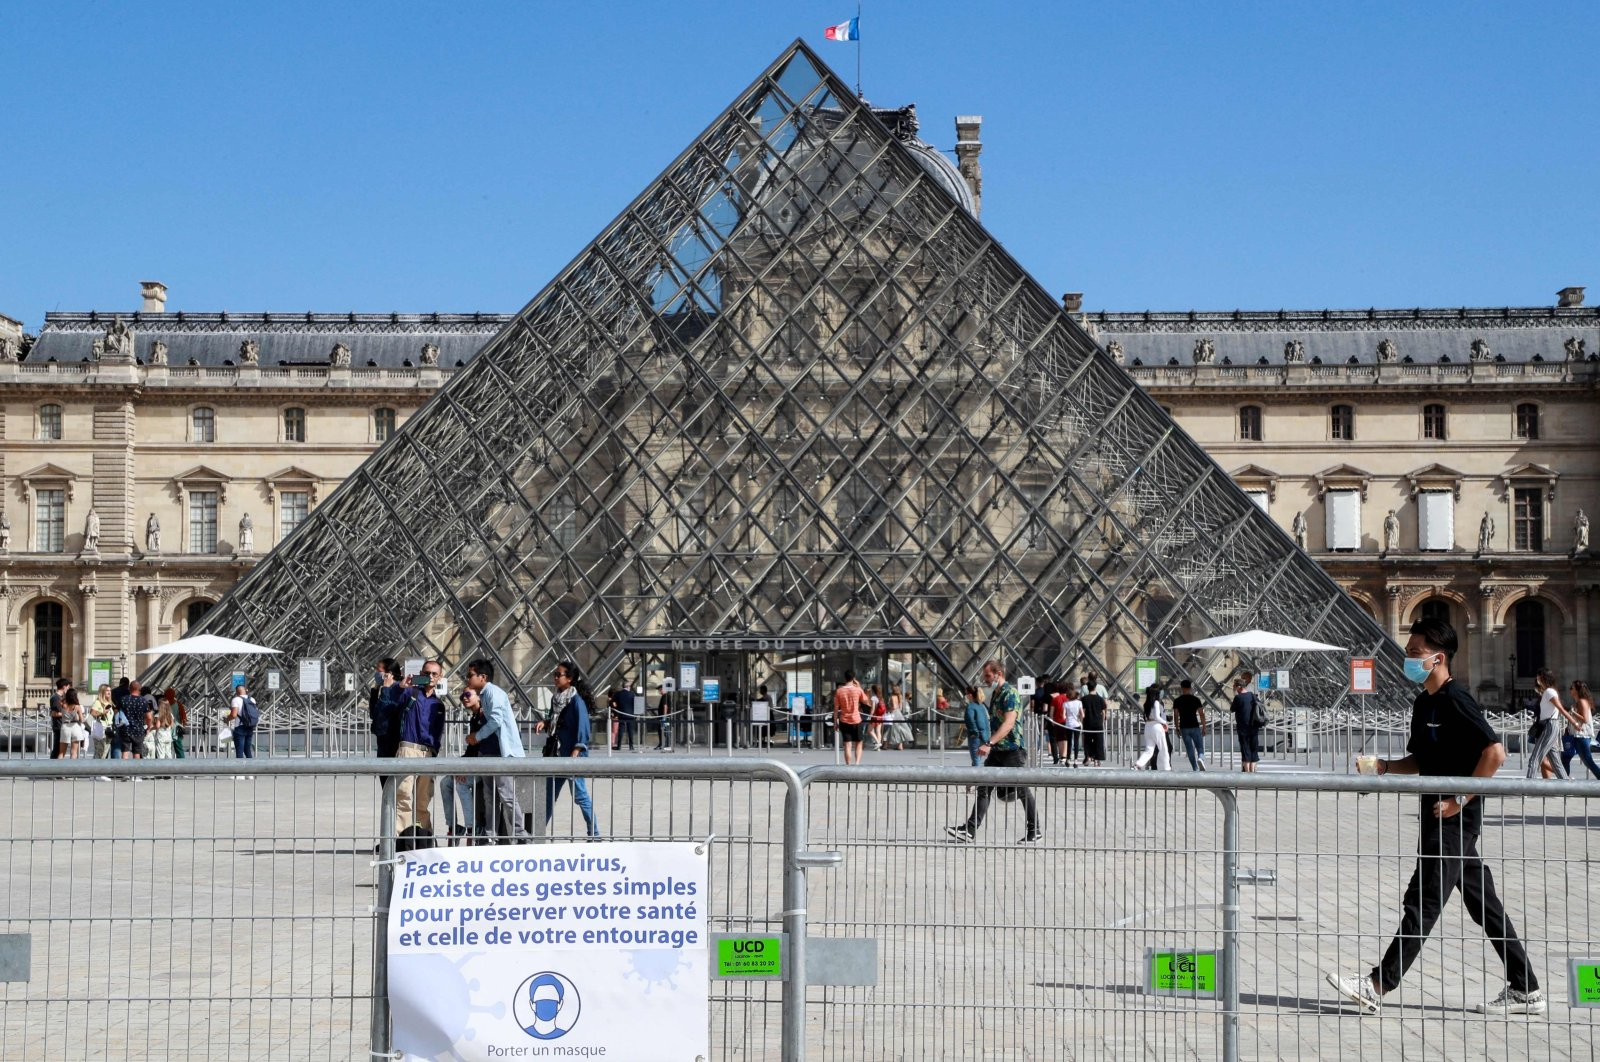 People wearing face masks walk in front of the Louvre Pyramid, Paris, France, Aug. 27, 2020. (AFP Photo)